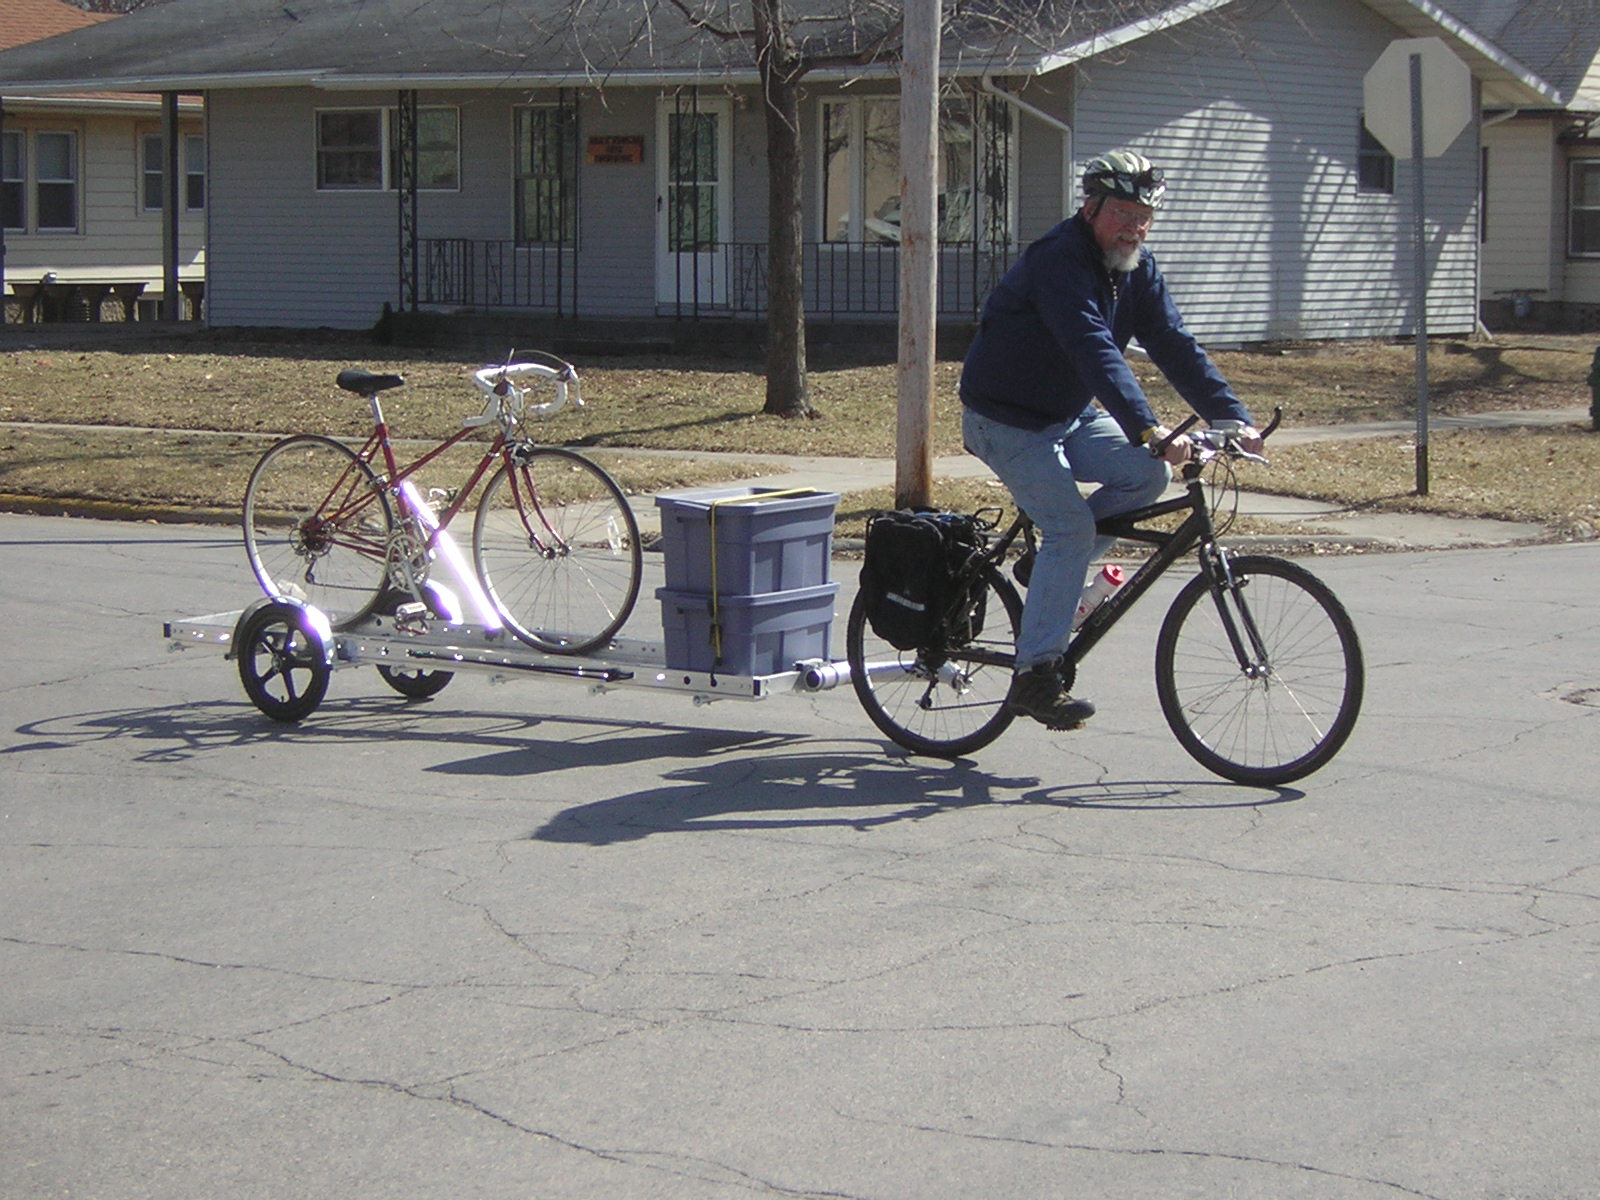 Bicycle Repair Man Craig Corson carrying a bike and his tools on a 96A trailer